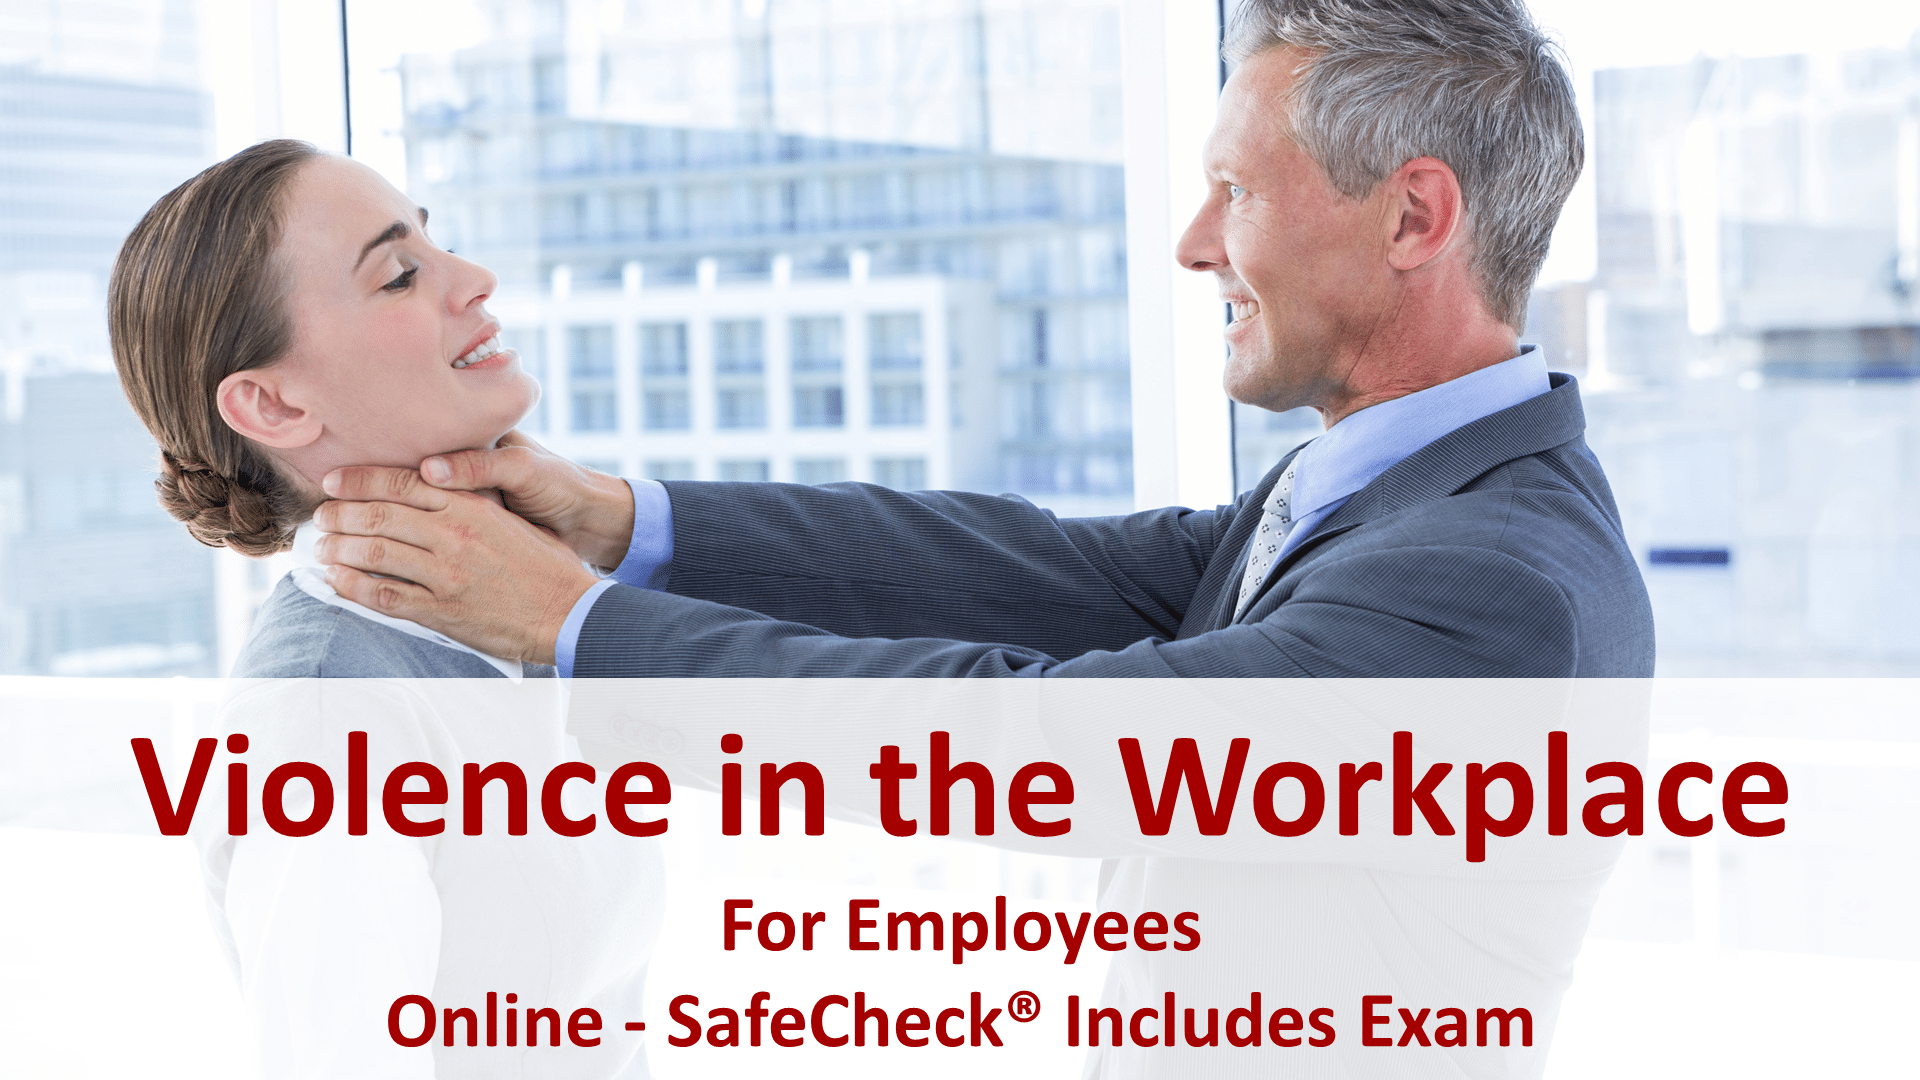 Violence in Workplace for Employees